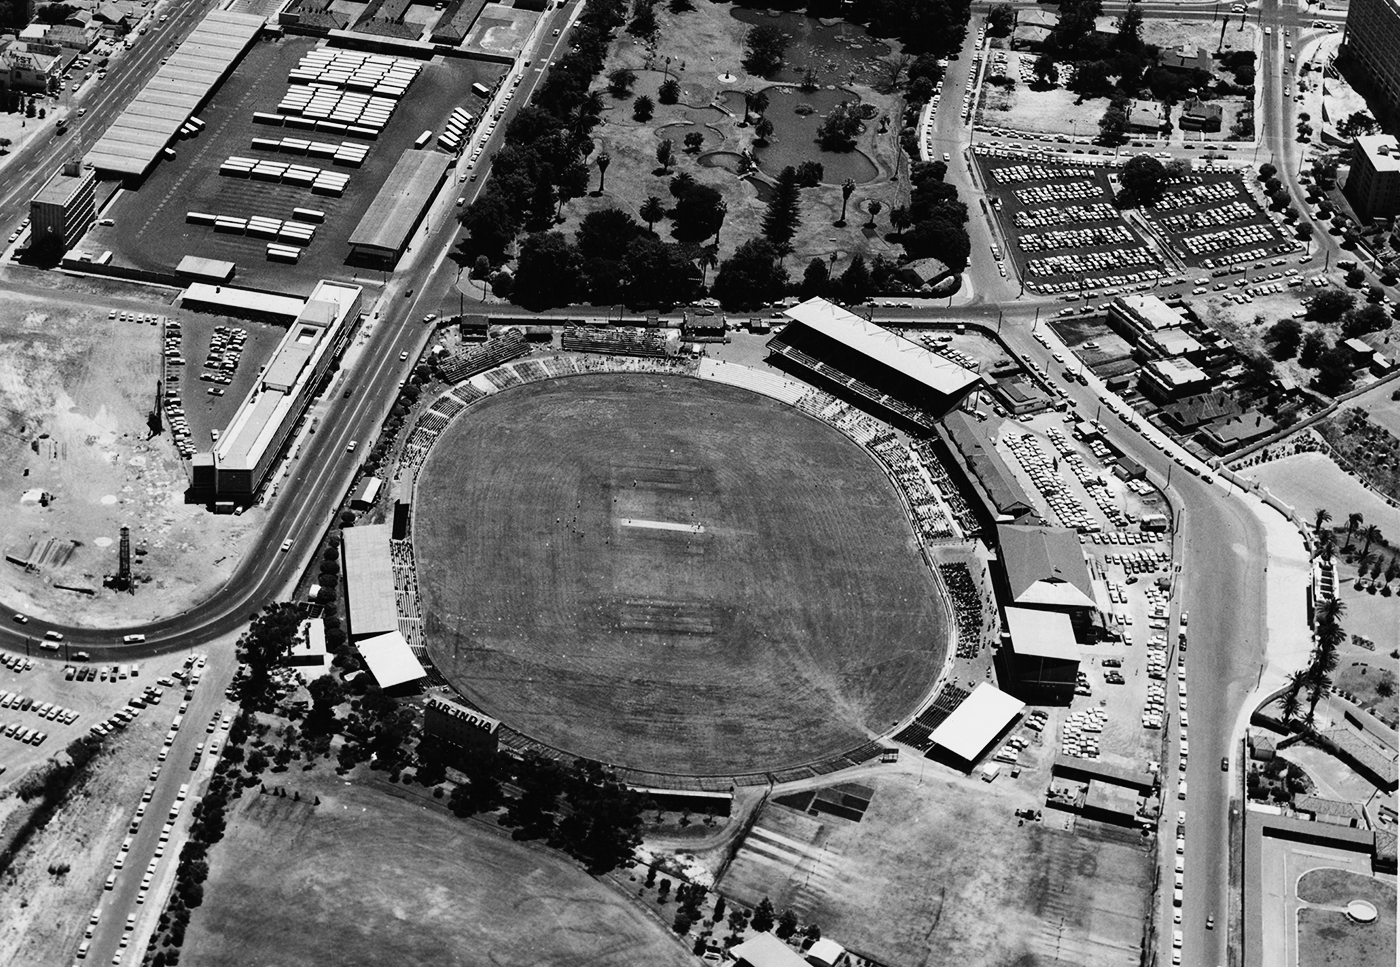 The WACA on November 22, 1970 in the aftermath of the Barry Richards assault